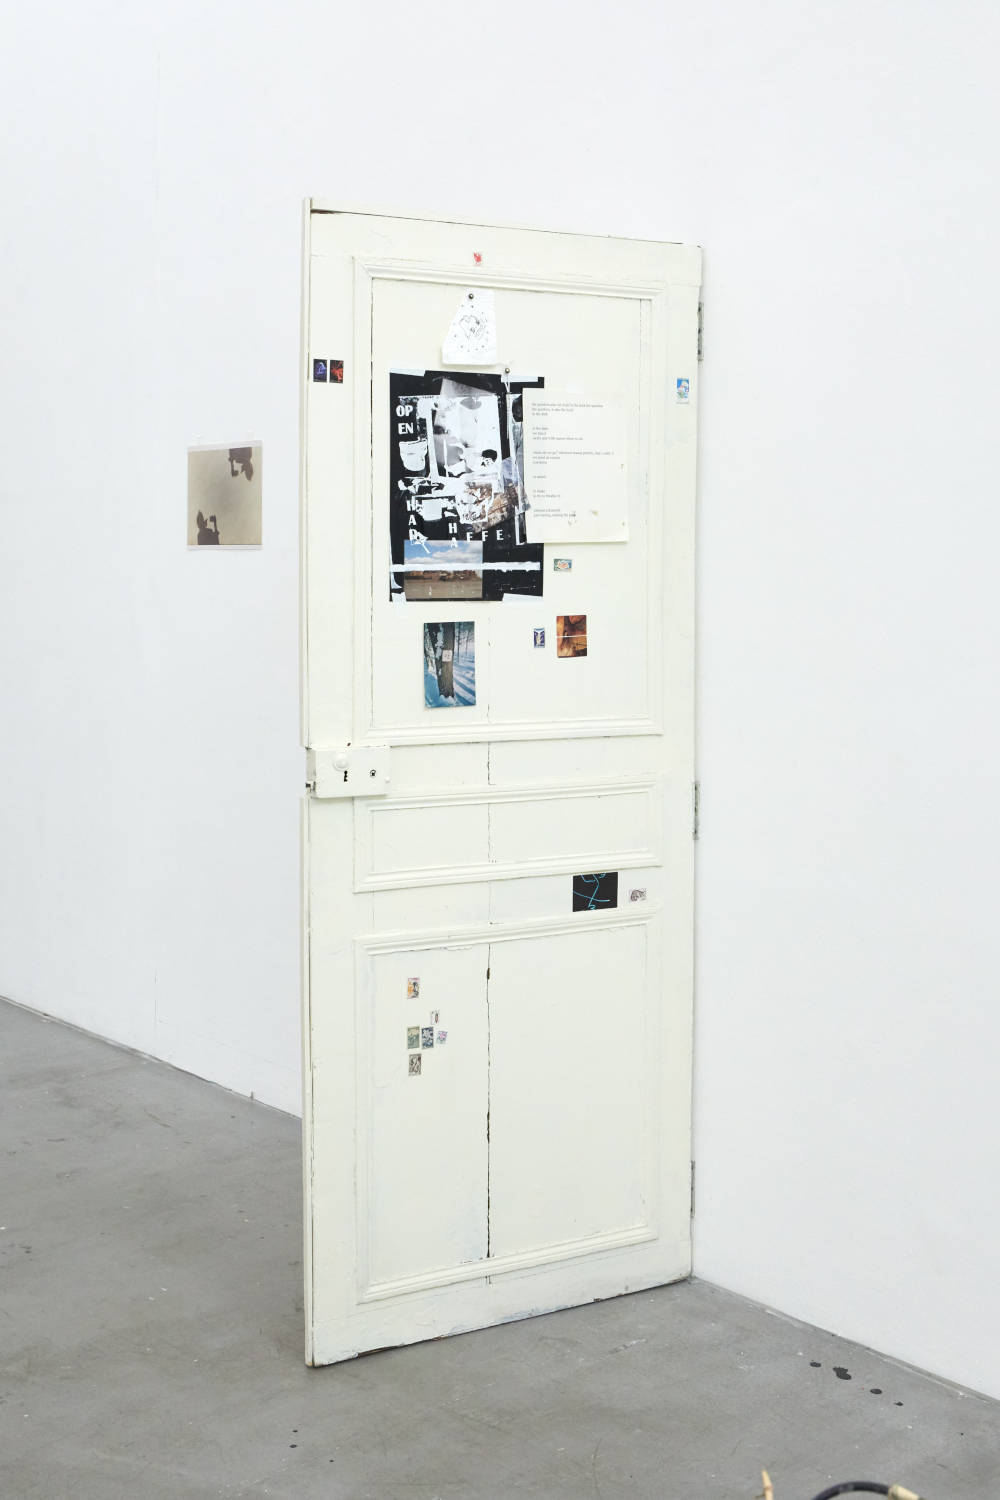 Ryan Foerster & Hannah Buonaguro, here I opened wide the door, 2019. Wood door, paint, c prints, inkjet prints, stamps, glass, plastic, metal, keys, toilet paper, stickers. Variable dimensions. Courtesy of the artist & VNH Gallery. Photo: Johanna Benaïnous